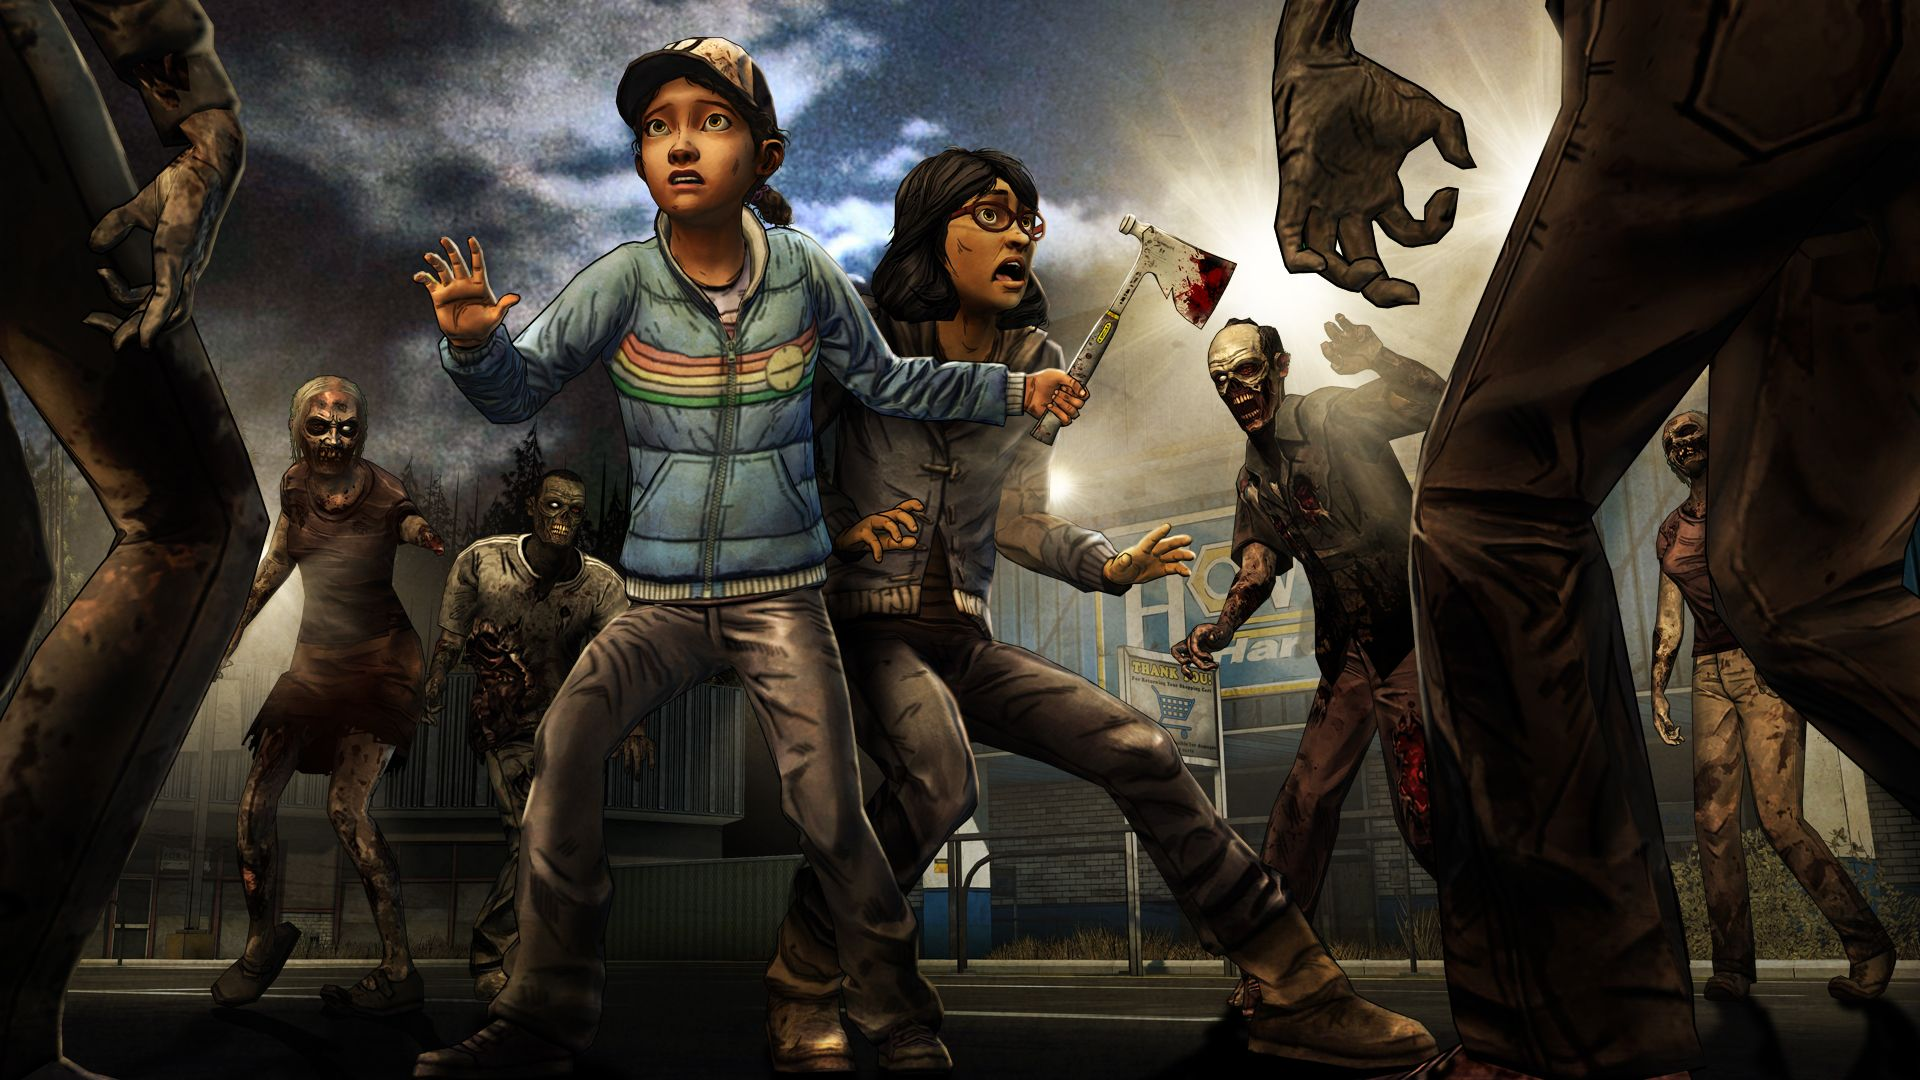 The Walking Dead Game: Season 2 Episode 3 Clem and Sarah